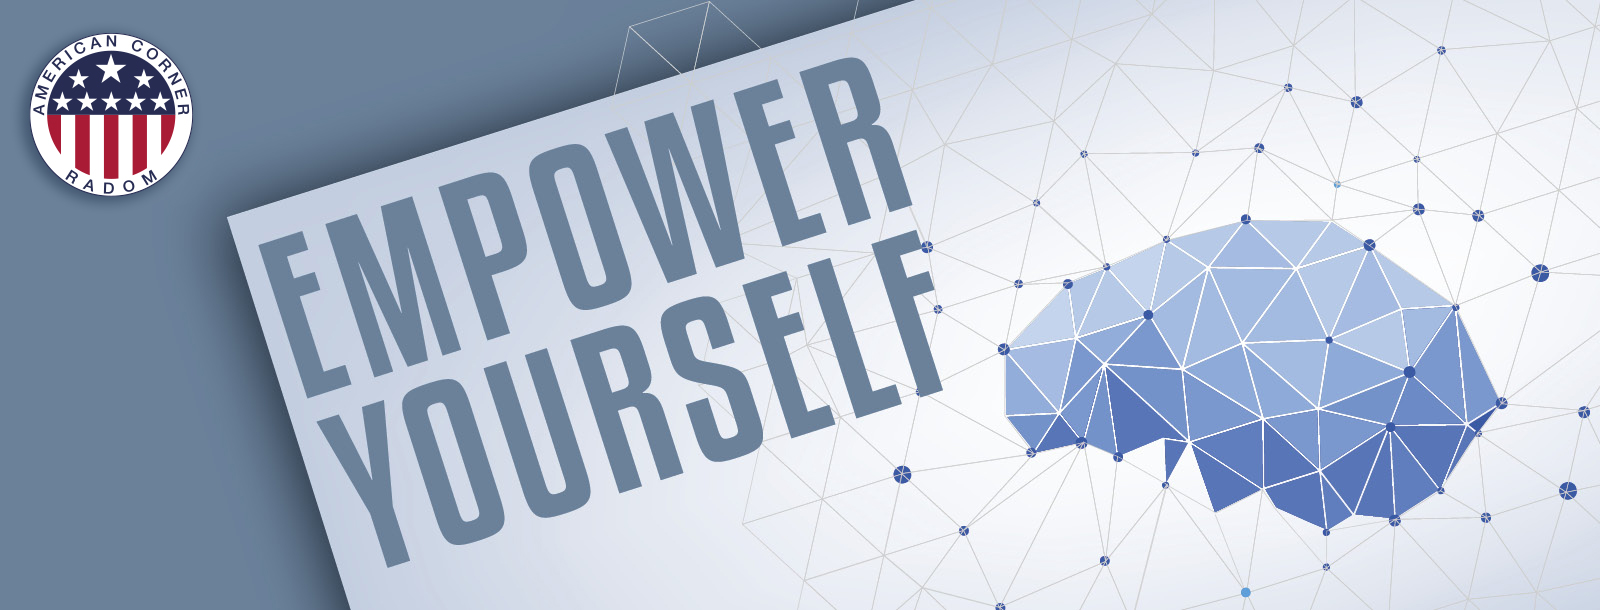 EMPOWER YOURSELF - CULTURE POWER!